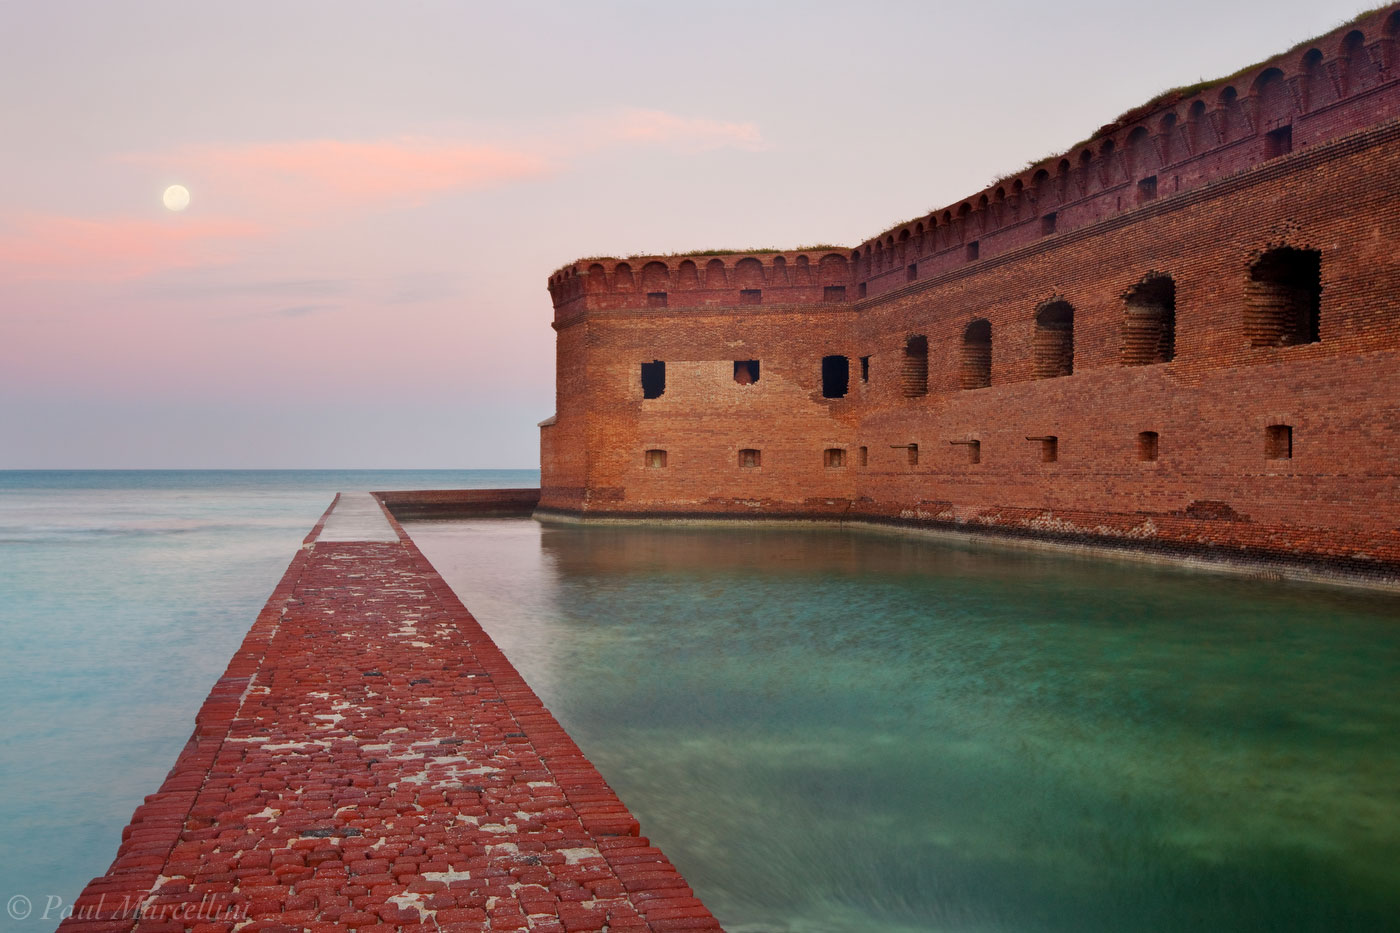 Dry Tortugas National Park, garden key, Fort Jefferson, Dry Tortugas, Florida, south florida, nature, photography, photo